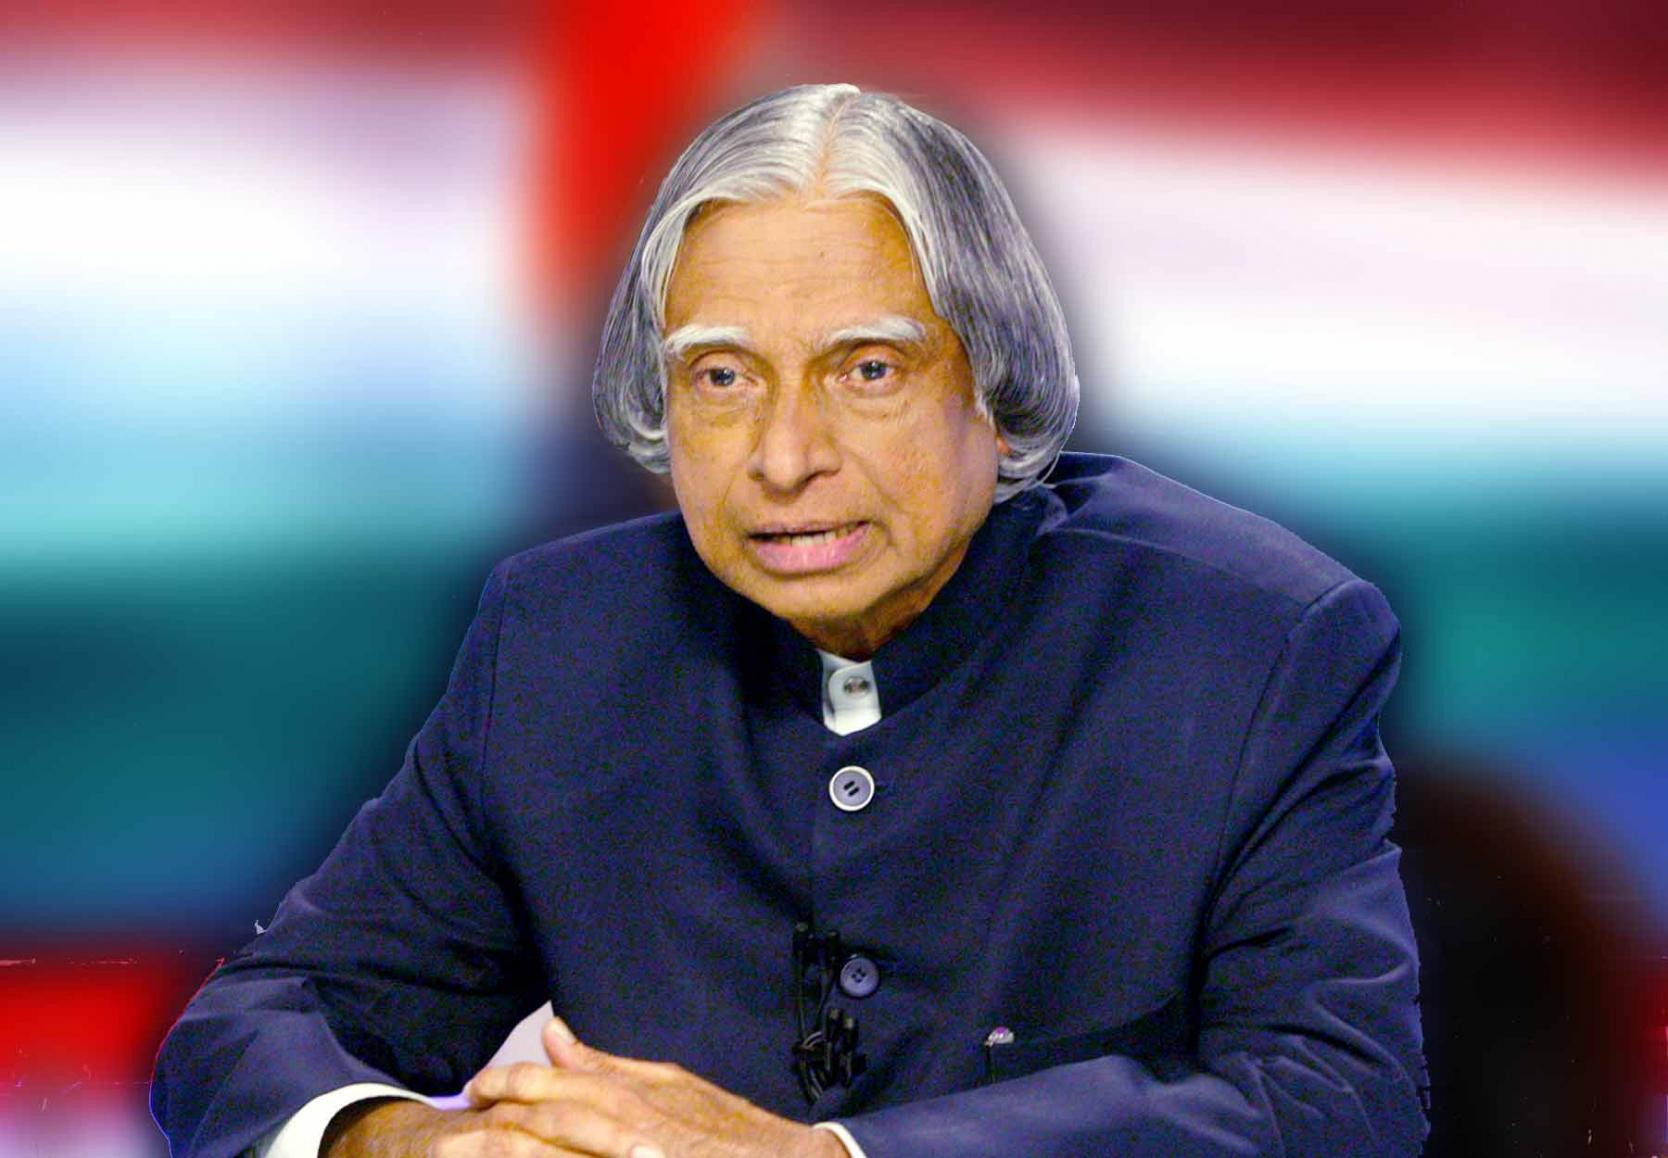 Dr Abdul Kalam Quotes Wallpapers List Of 20 Famous Books Written By Dr A P J Abdul Kalam